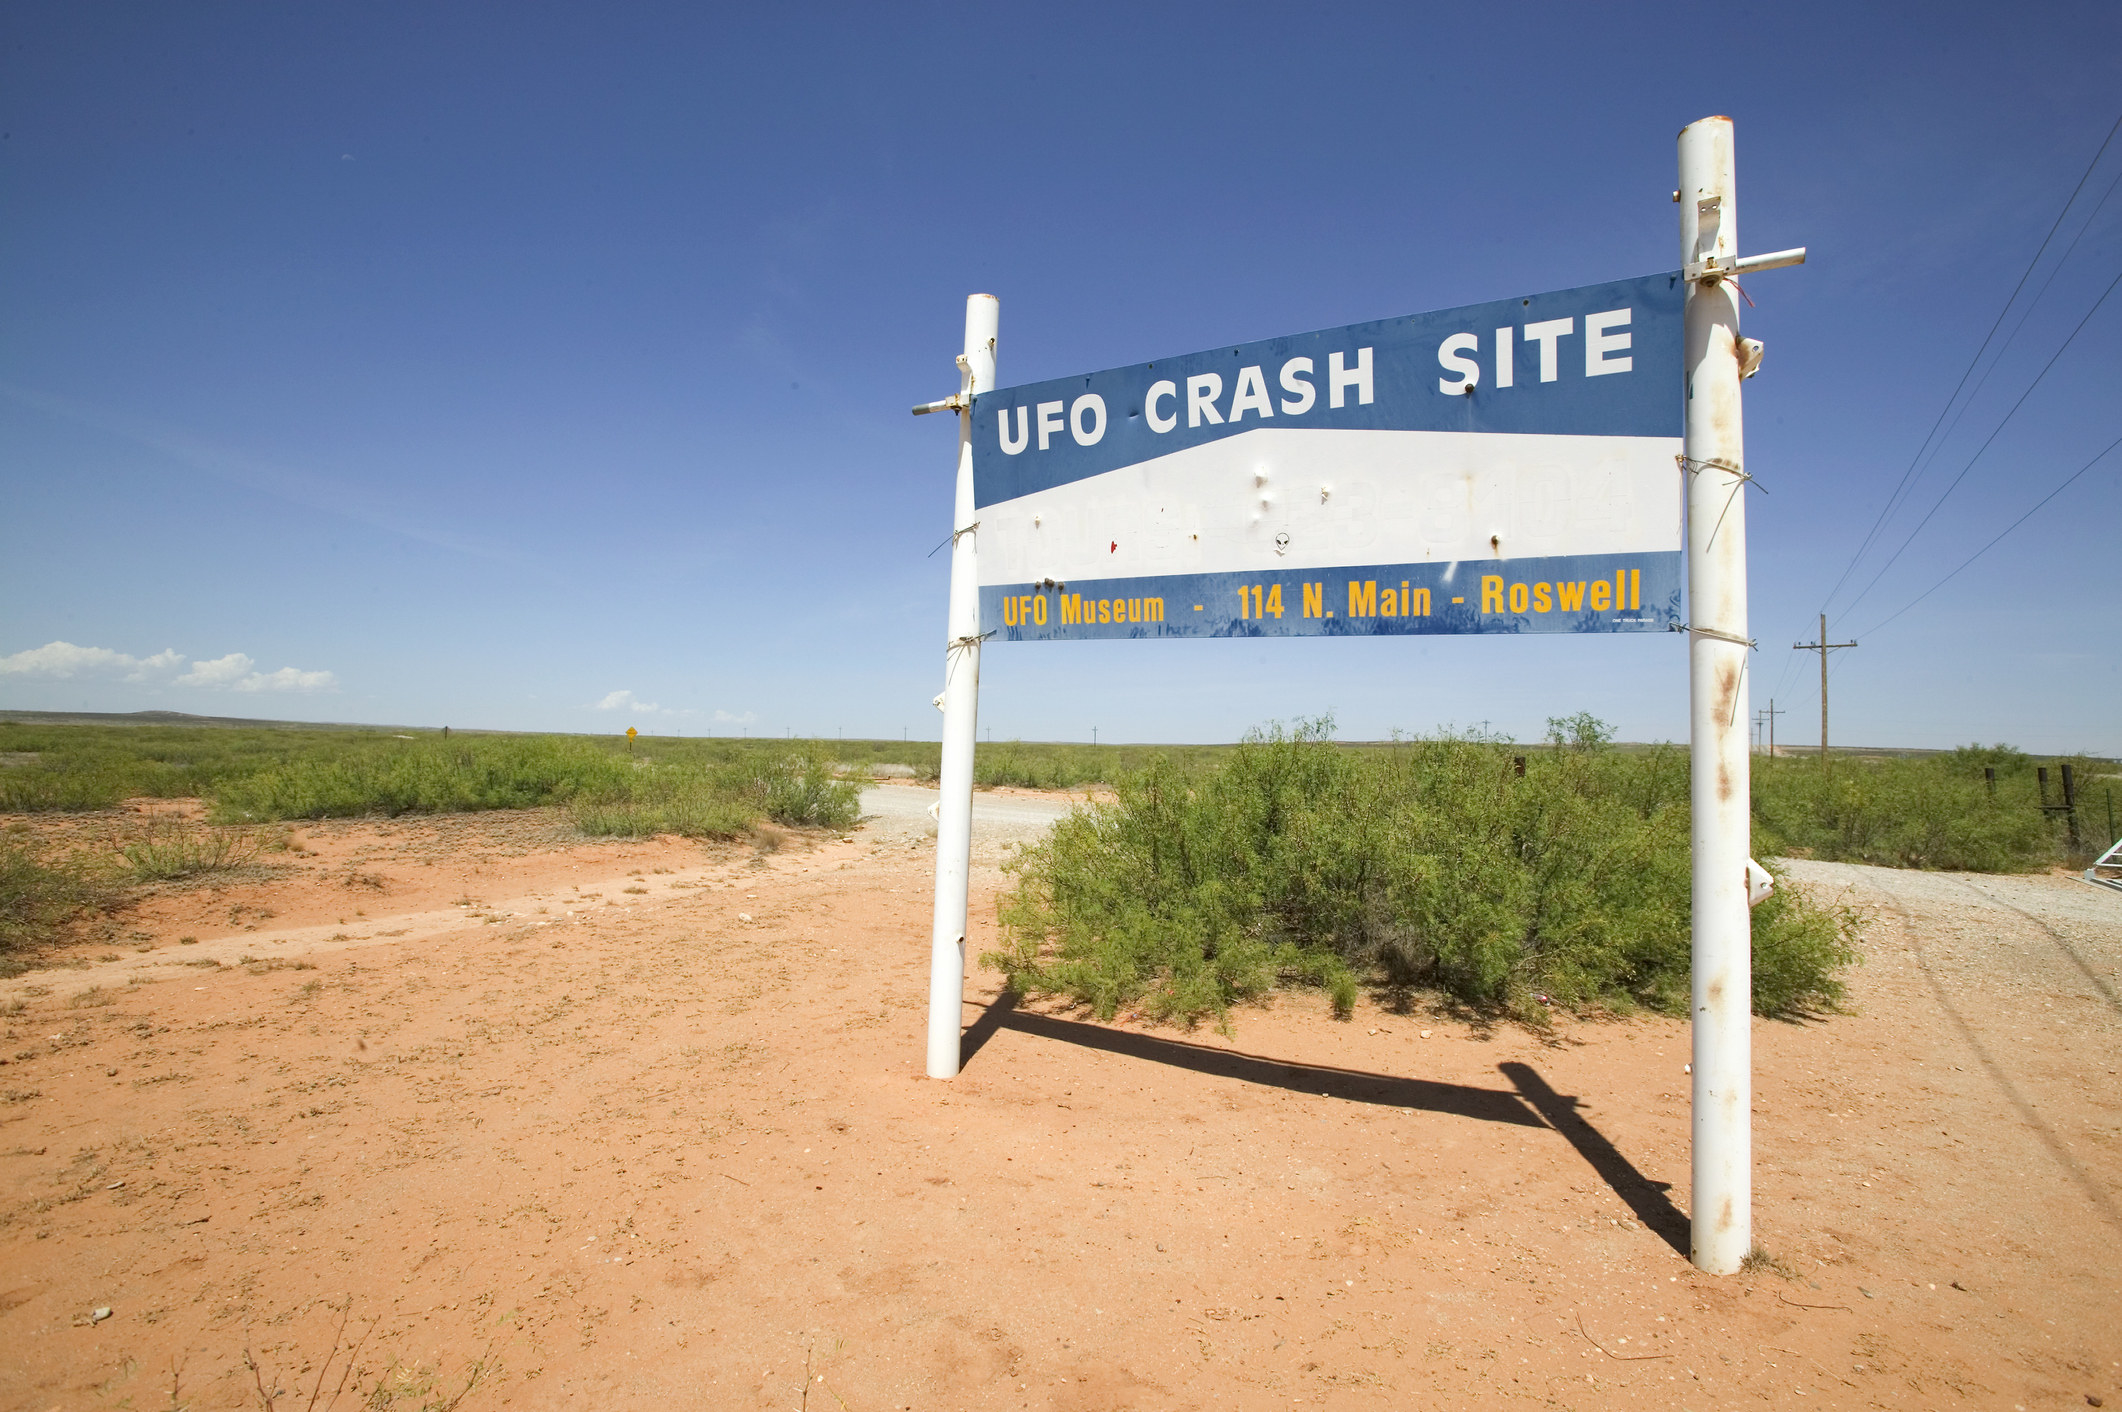 A sign for the UFO crash site in Roswell.